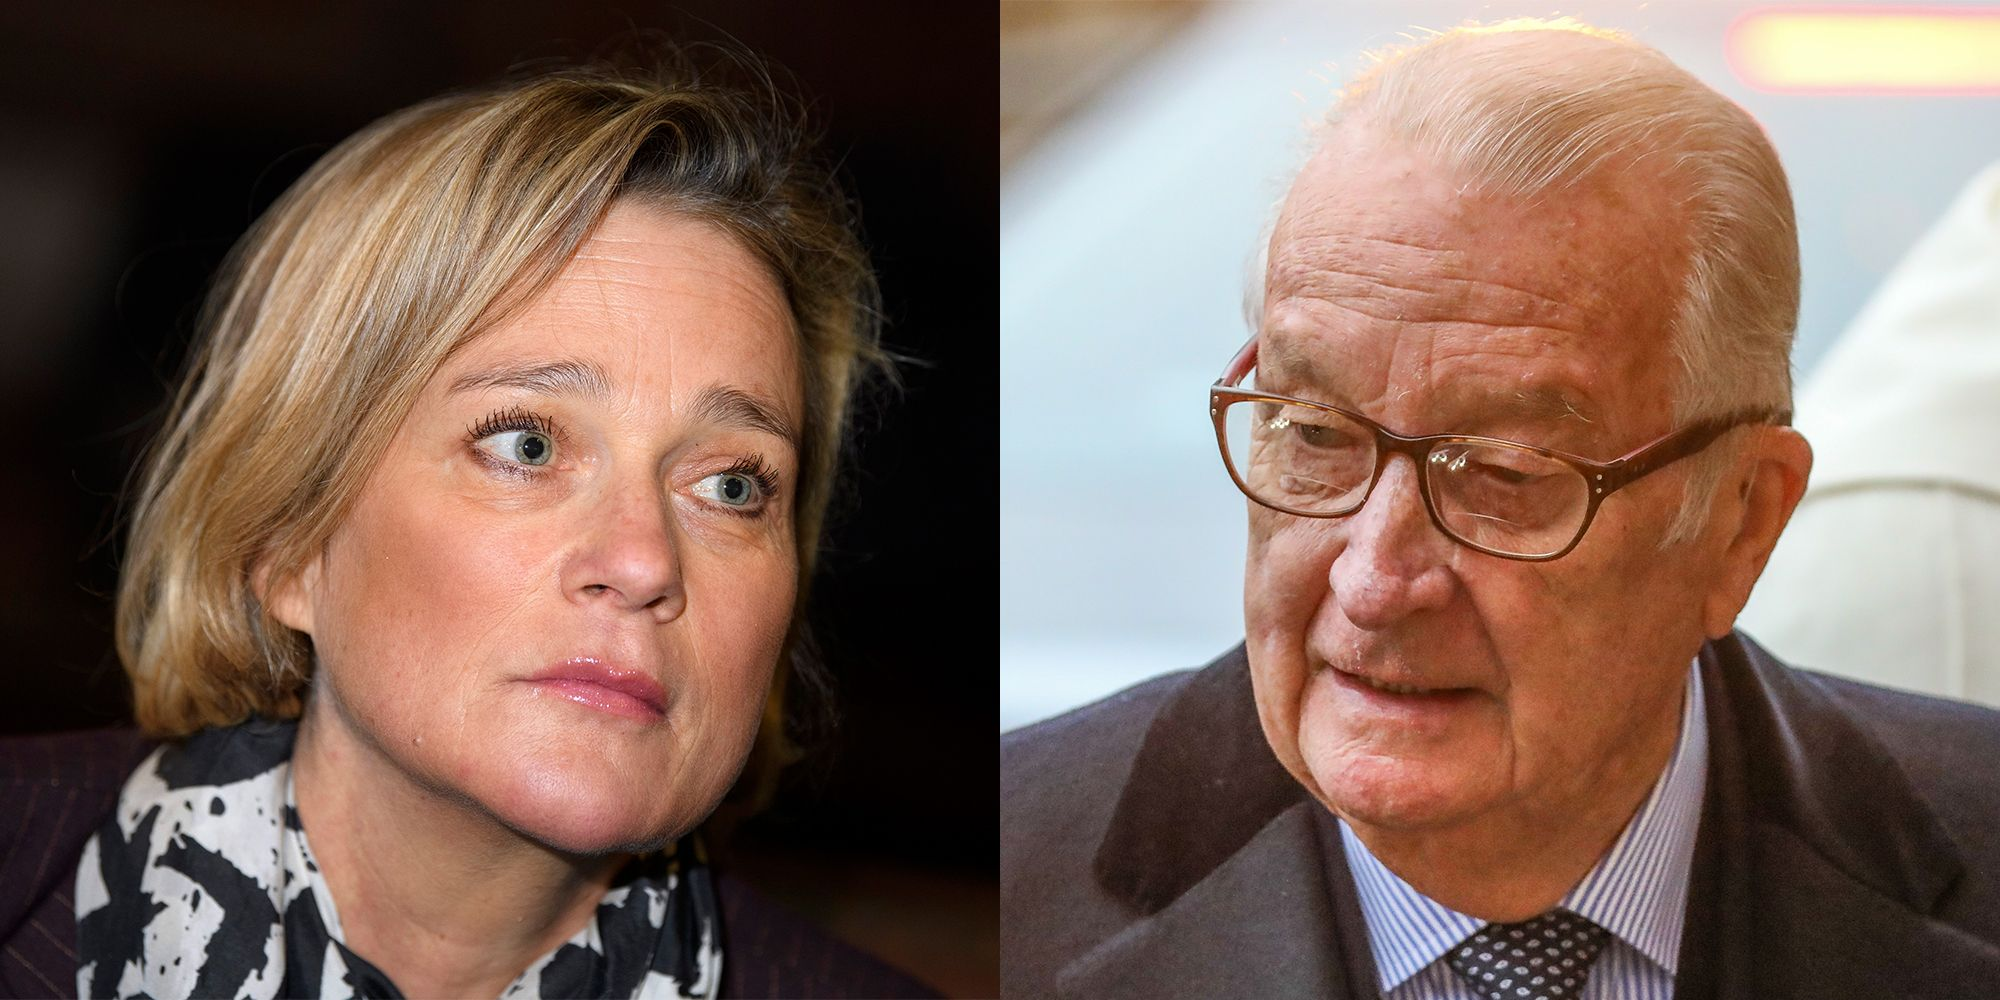 Former King of Belgium, Albert II, Forced to Acknowledge Child Fathered in an Affair